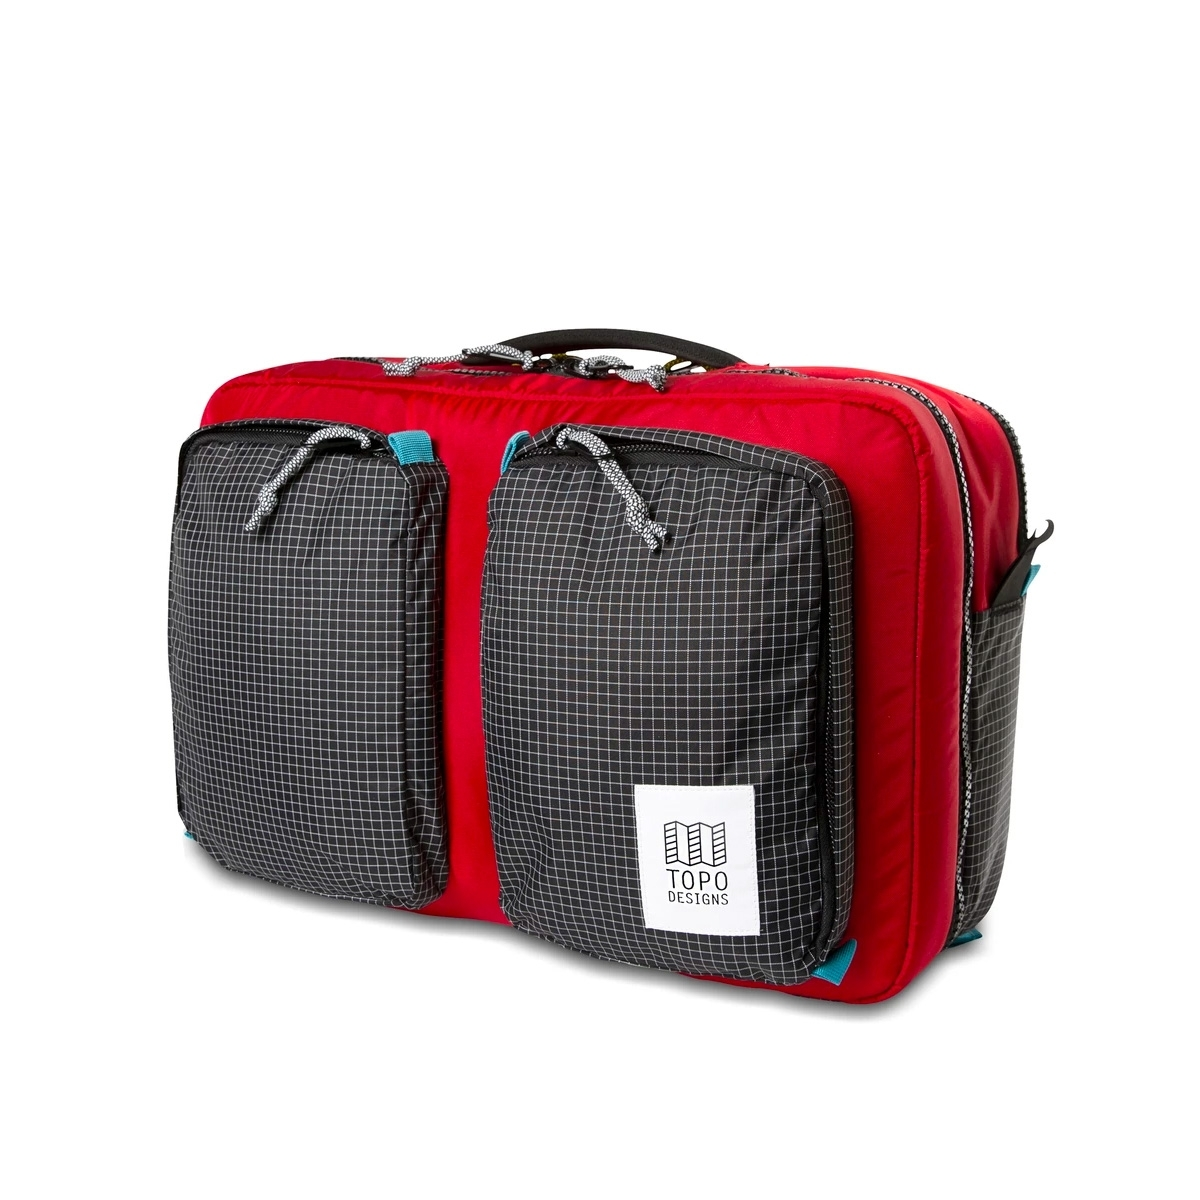 Topo Designs Global Briefcase 3-day Red/Black Ripstop